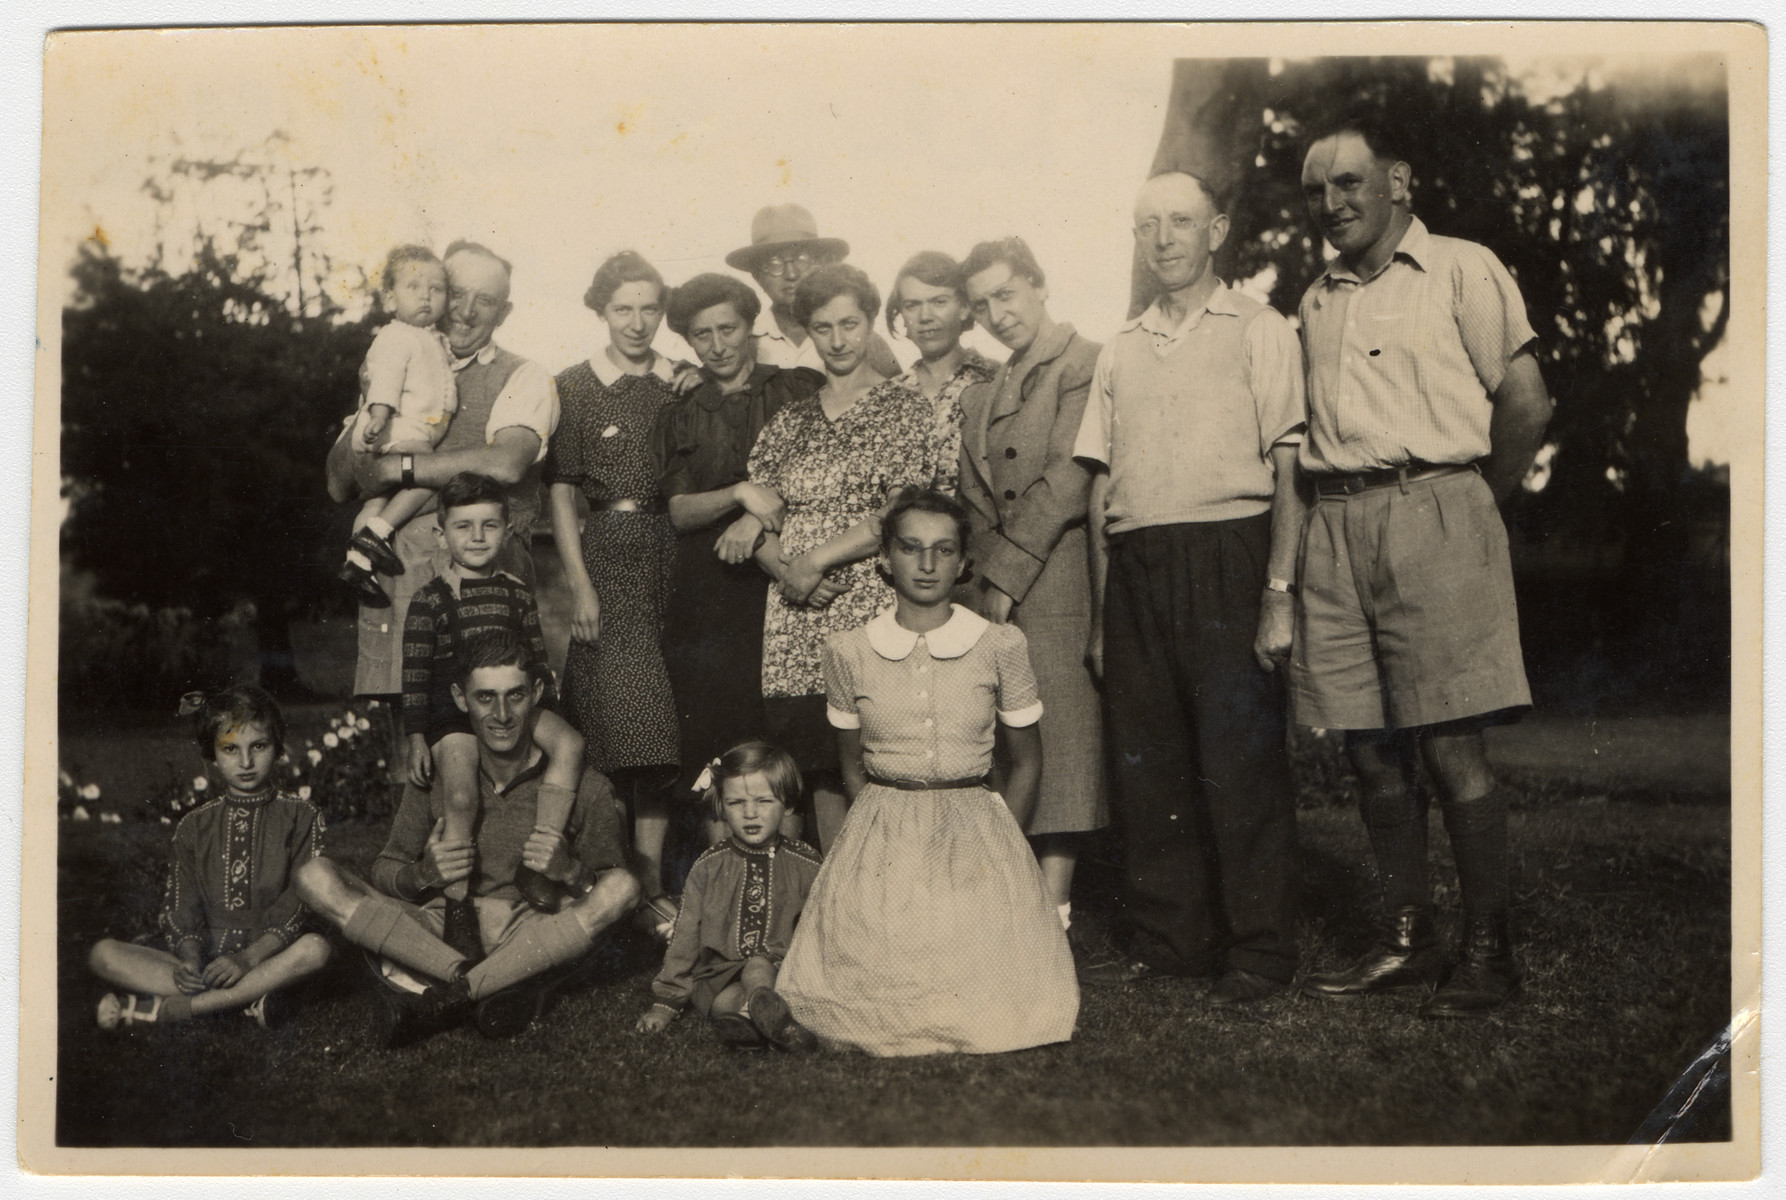 Group portrait of an extended German Jewish family who had found refuge in Kenya.  First row, left to right: Gisela Berg, Herman Mayer with Igon on his shoulders, Hannah, and Inge Berg.  Second row, left to right: Ernest Berg holding Phillip, Else Berg, Klara Berg, Joseph Berg, Erna Berg, Rosel Berg, Sara Berg, Josef, and Adolf.